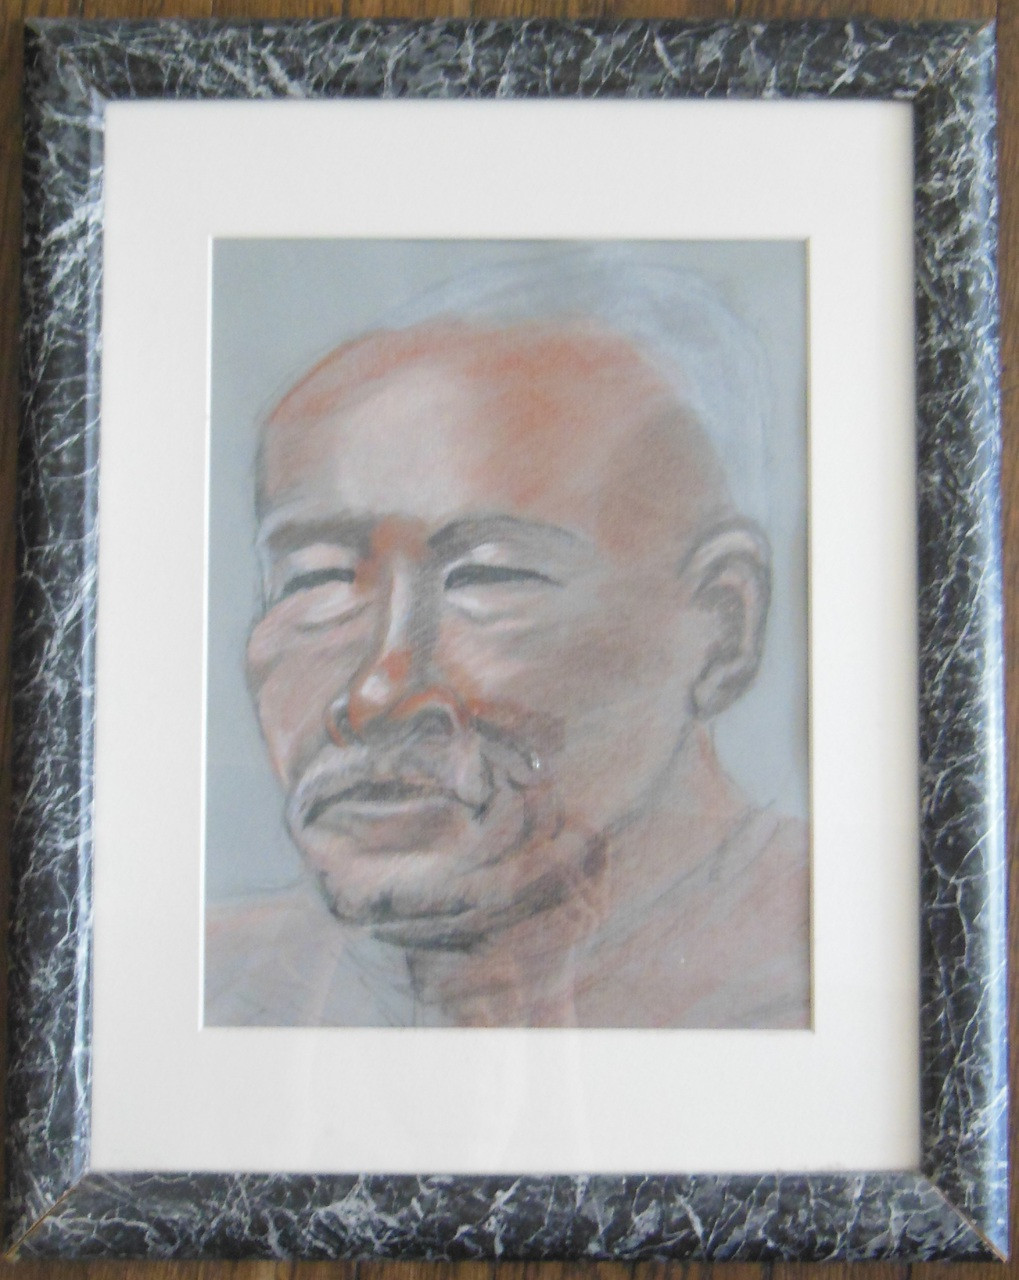 Clinton - Pastel and charcoal on paper - Framed